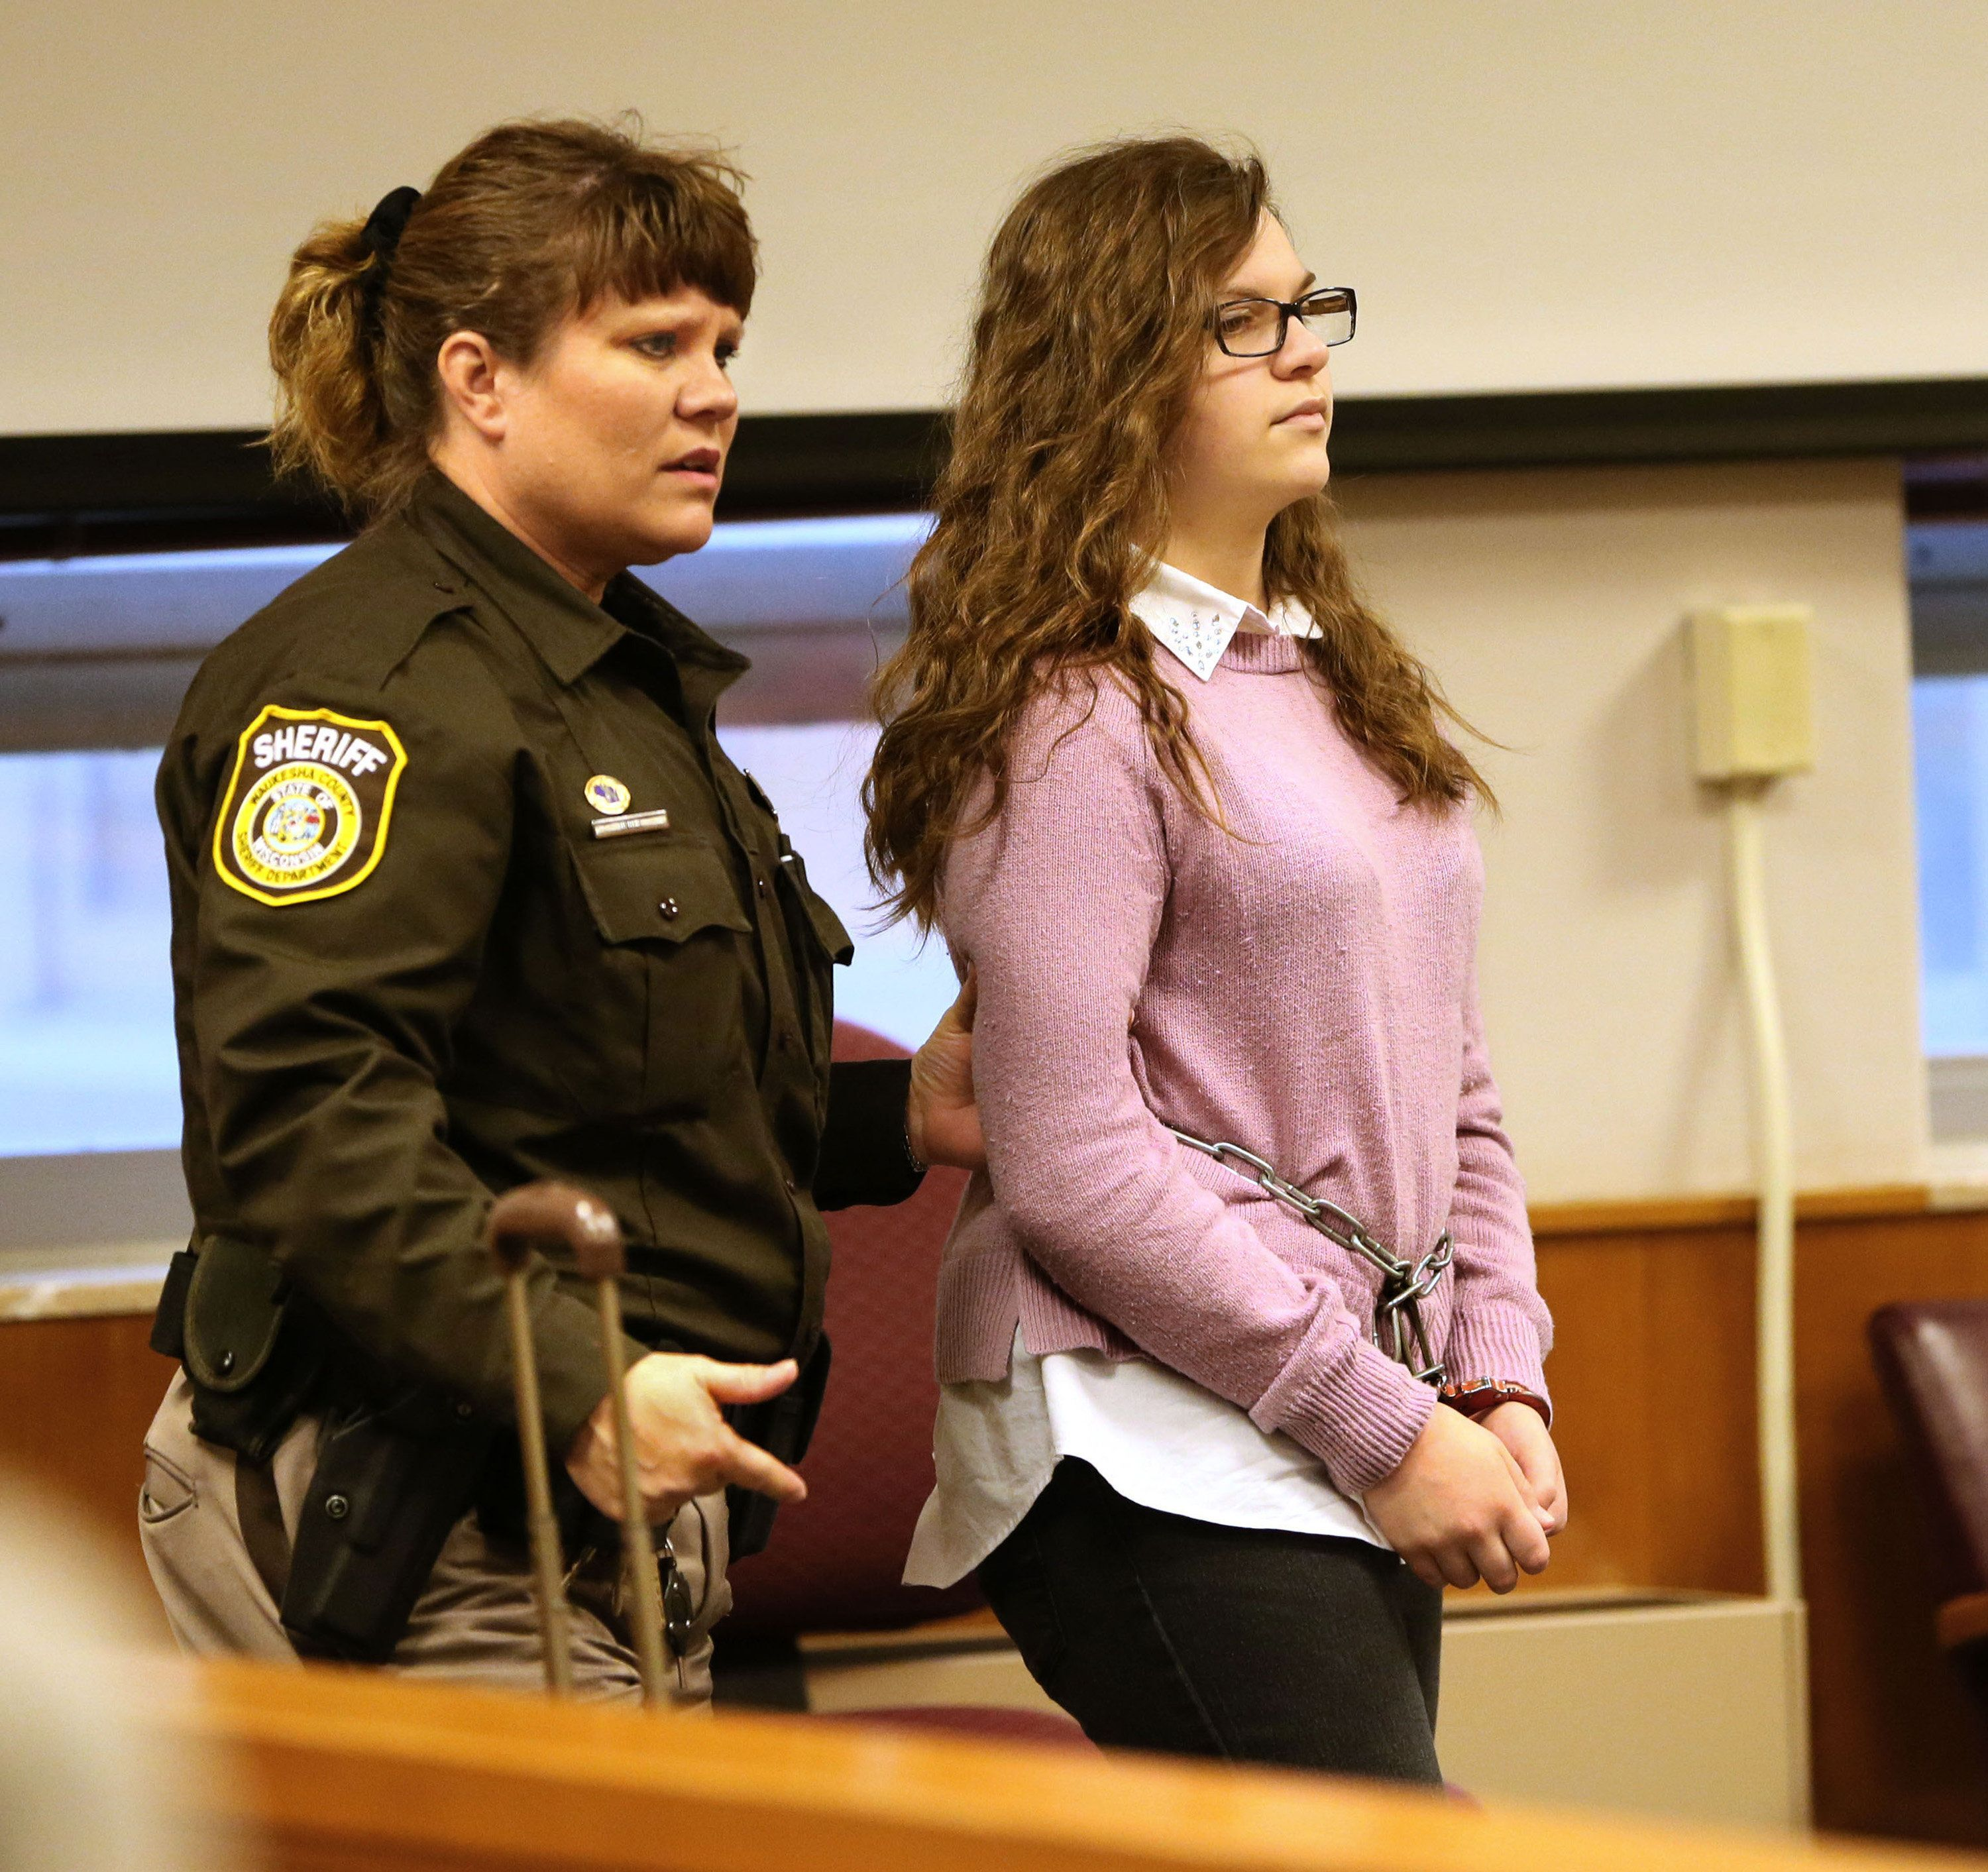 Teen Gets 25 Years In Mental Health Facility For 'Slender Man'